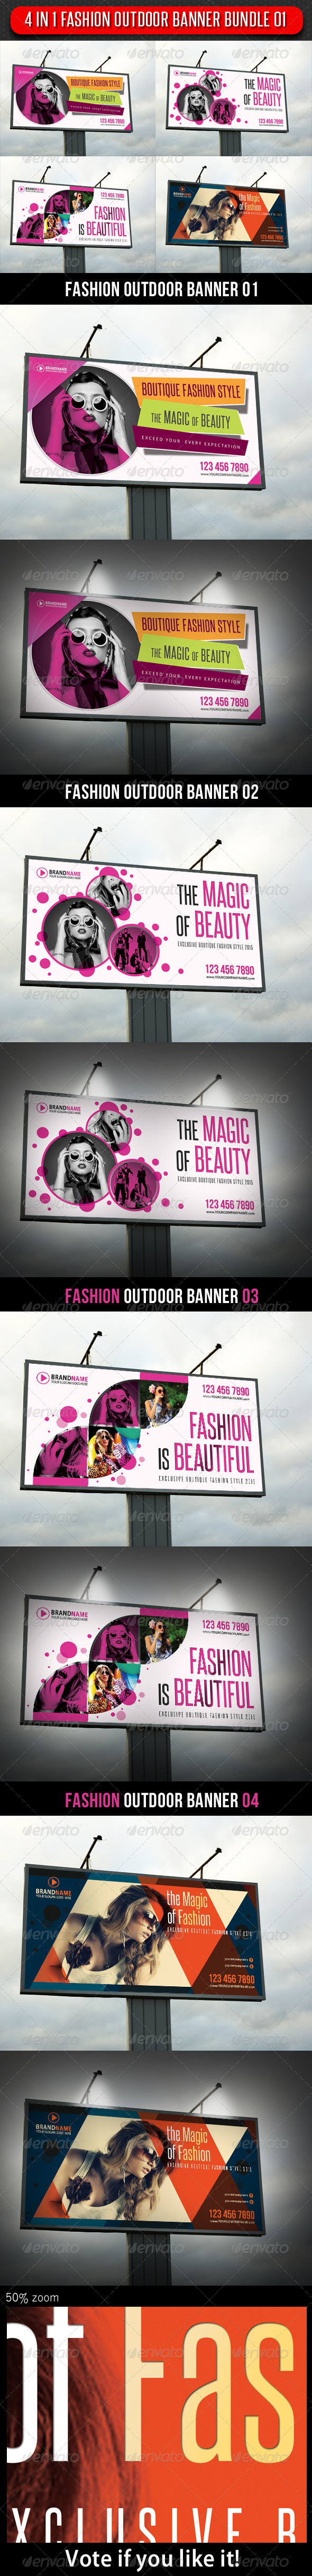 4 in 1 Fashion Outdoor Banner Bundle 01 - Signage Print Templates